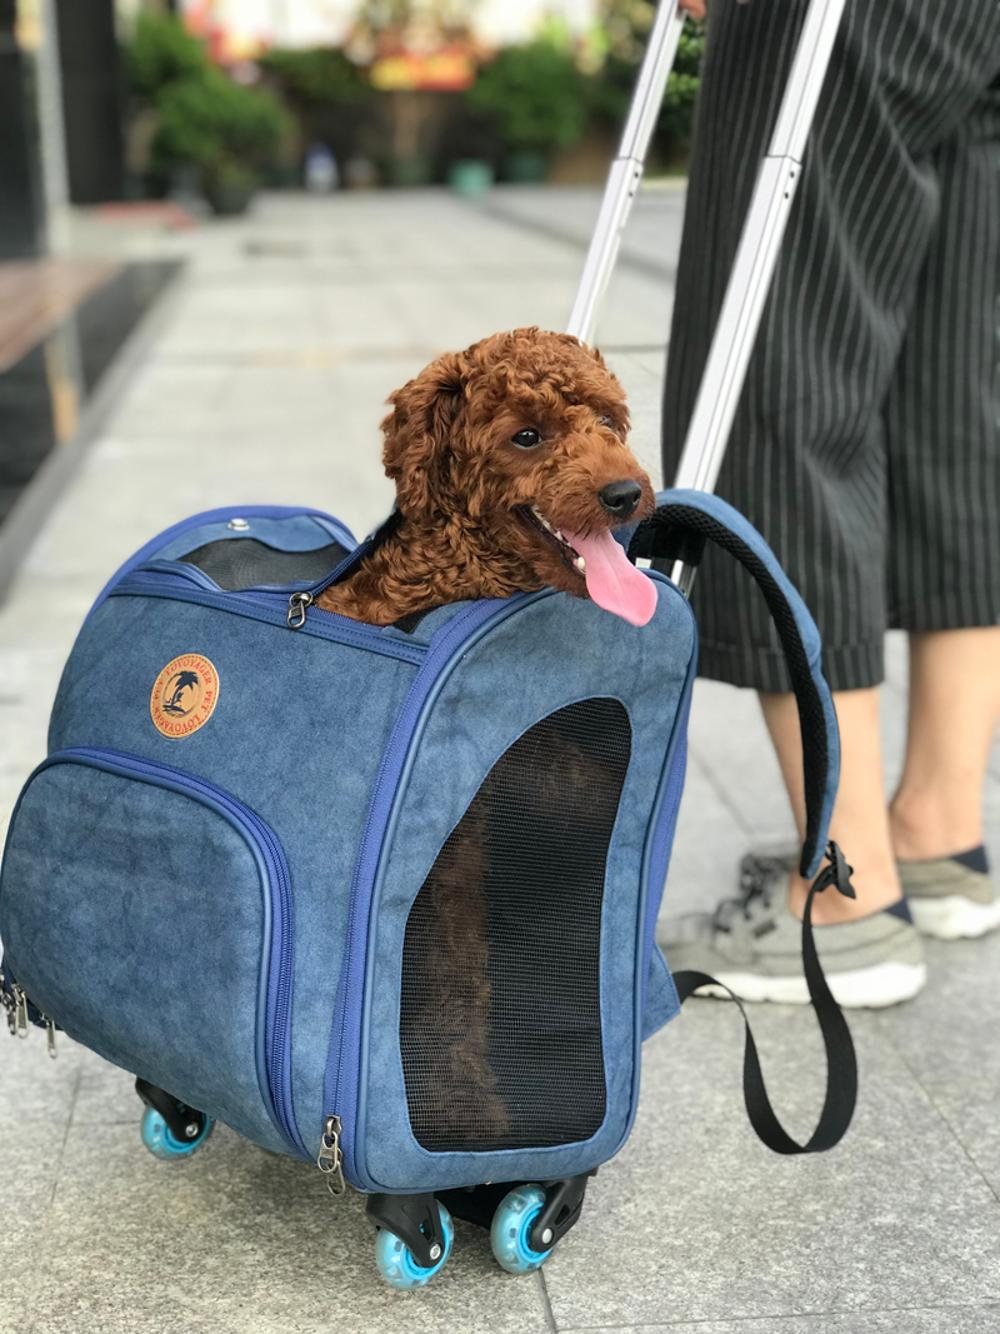 Airline Approved pet carrier backpack, pet travel rolling backpack stroller